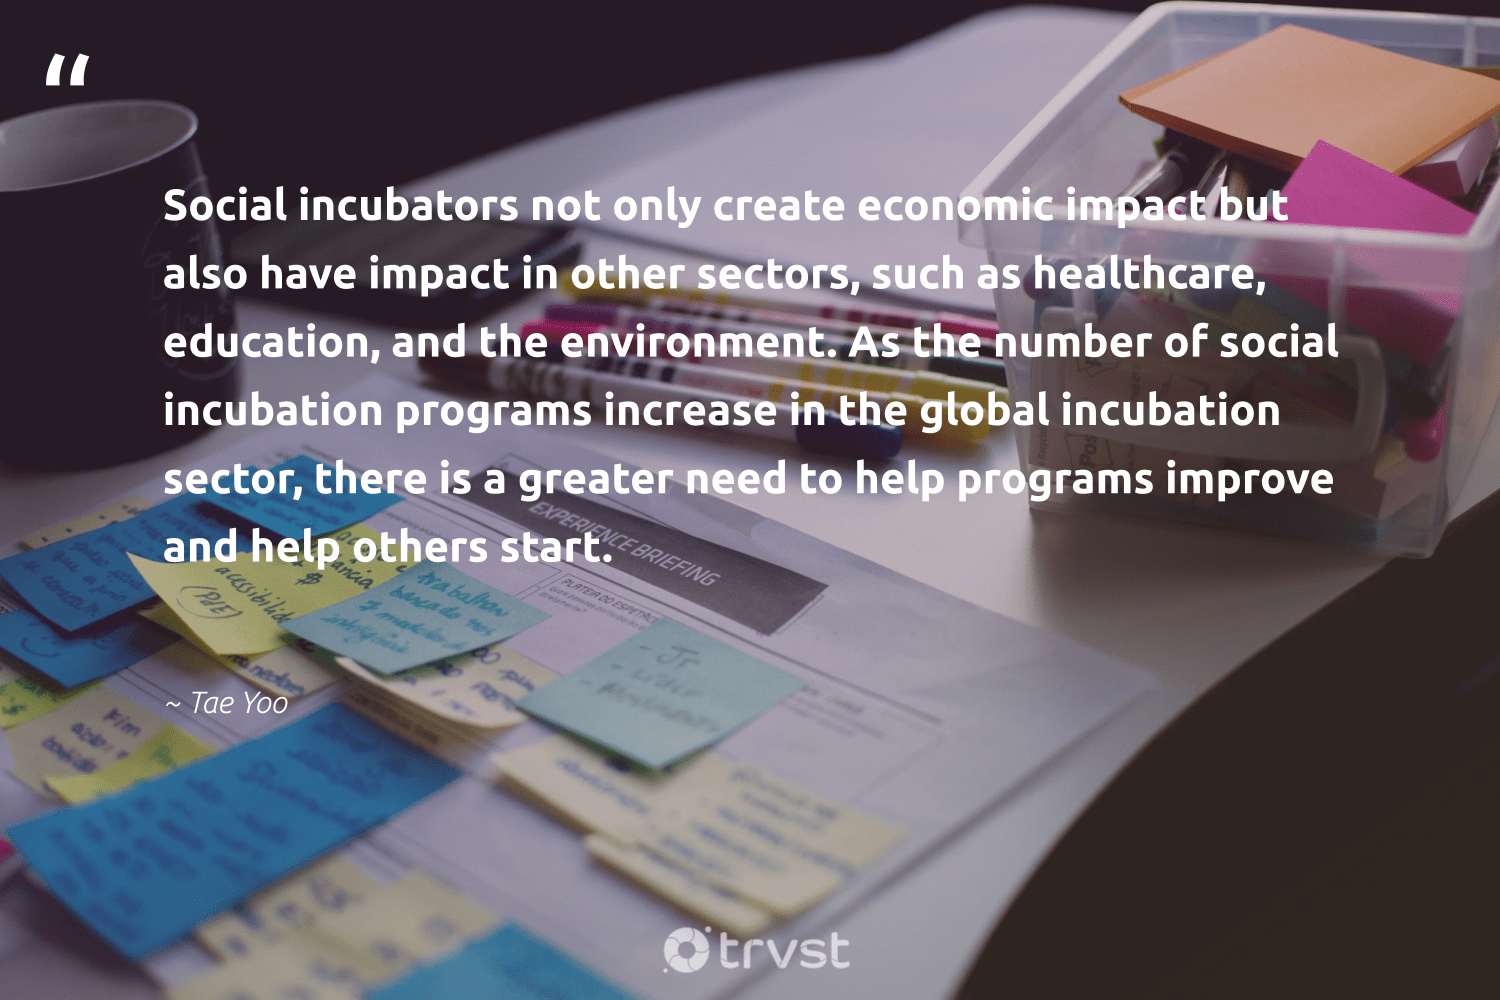 """Social incubators not only create economic impact but also have impact in other sectors, such as healthcare, education, and the environment. As the number of social incubation programs increase in the global incubation sector, there is a greater need to help programs improve and help others start.""  - Tae Yoo #trvst #quotes #impact #environment #education #conservation #makeadifference #sustainability #thinkgreen #planet #ethicalbusiness #environmentallyfriendly"